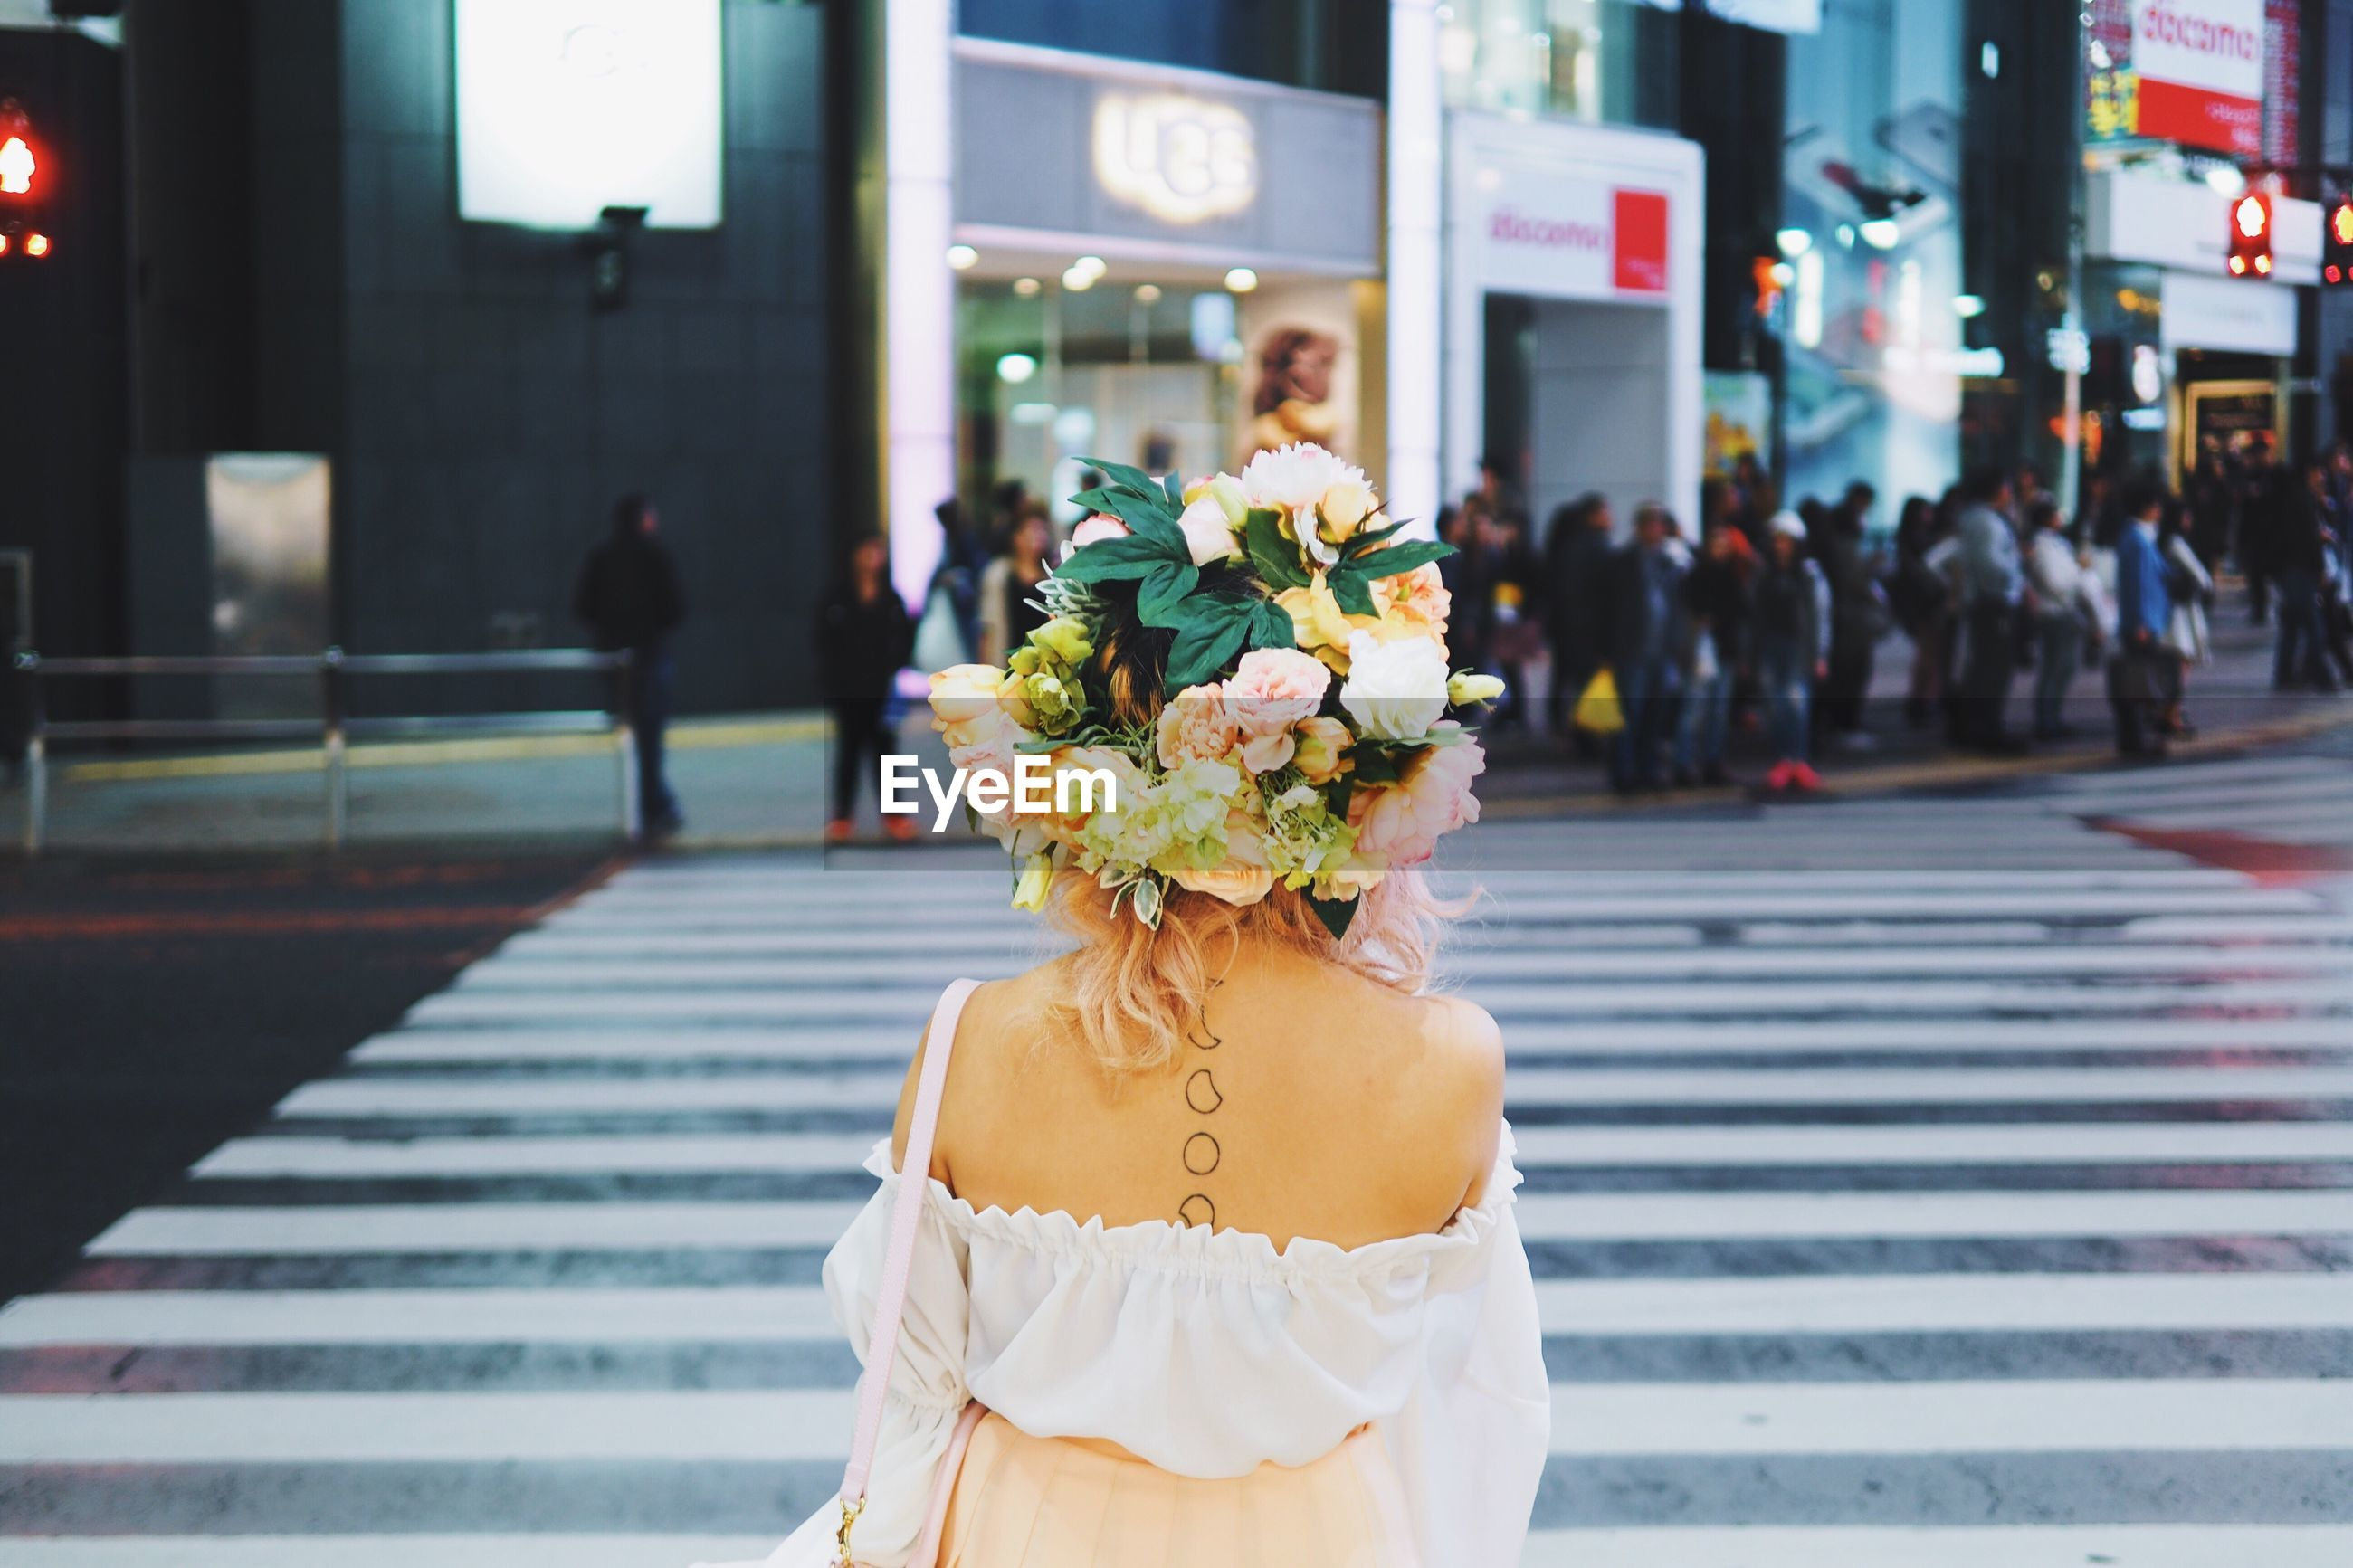 Rear view of a woman with flowers on head crossing road